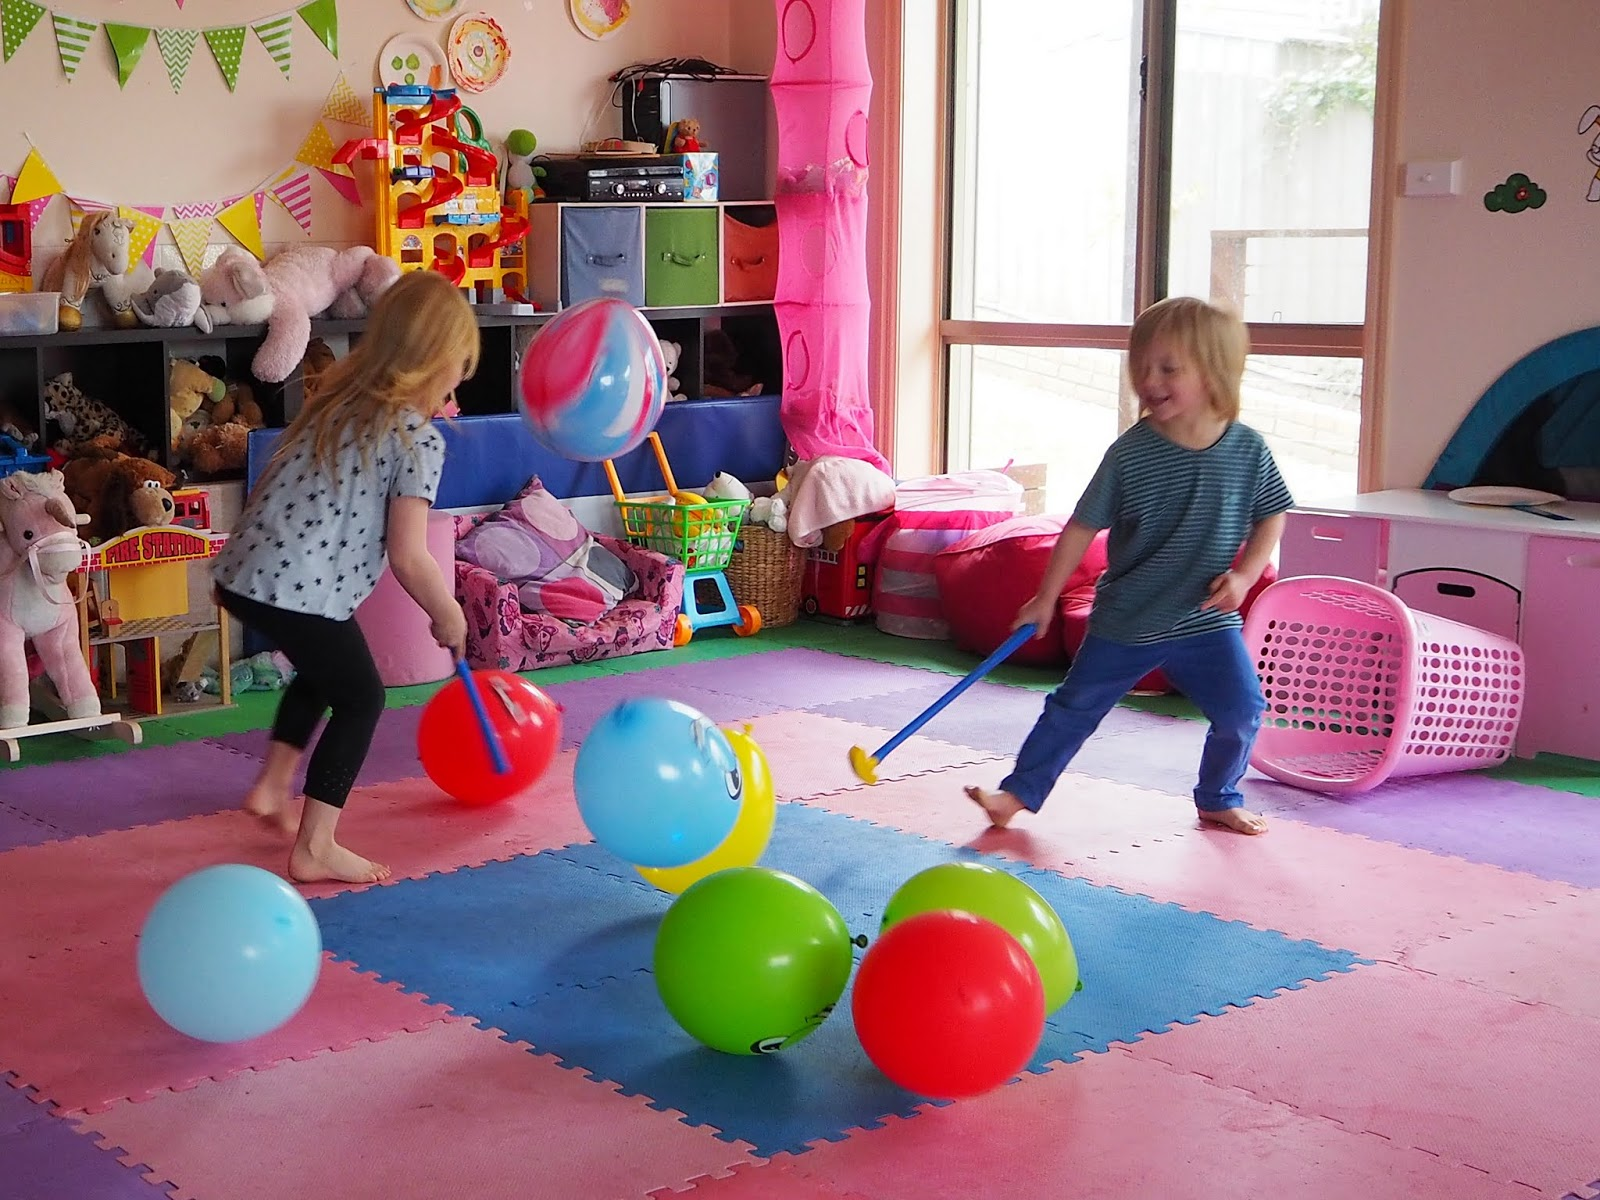 indoor activities for toddler birthday party ; vibrant-idea-kids-party-games-ideas-indoors-learn-with-play-at-home-5-fun-indoor-balloon